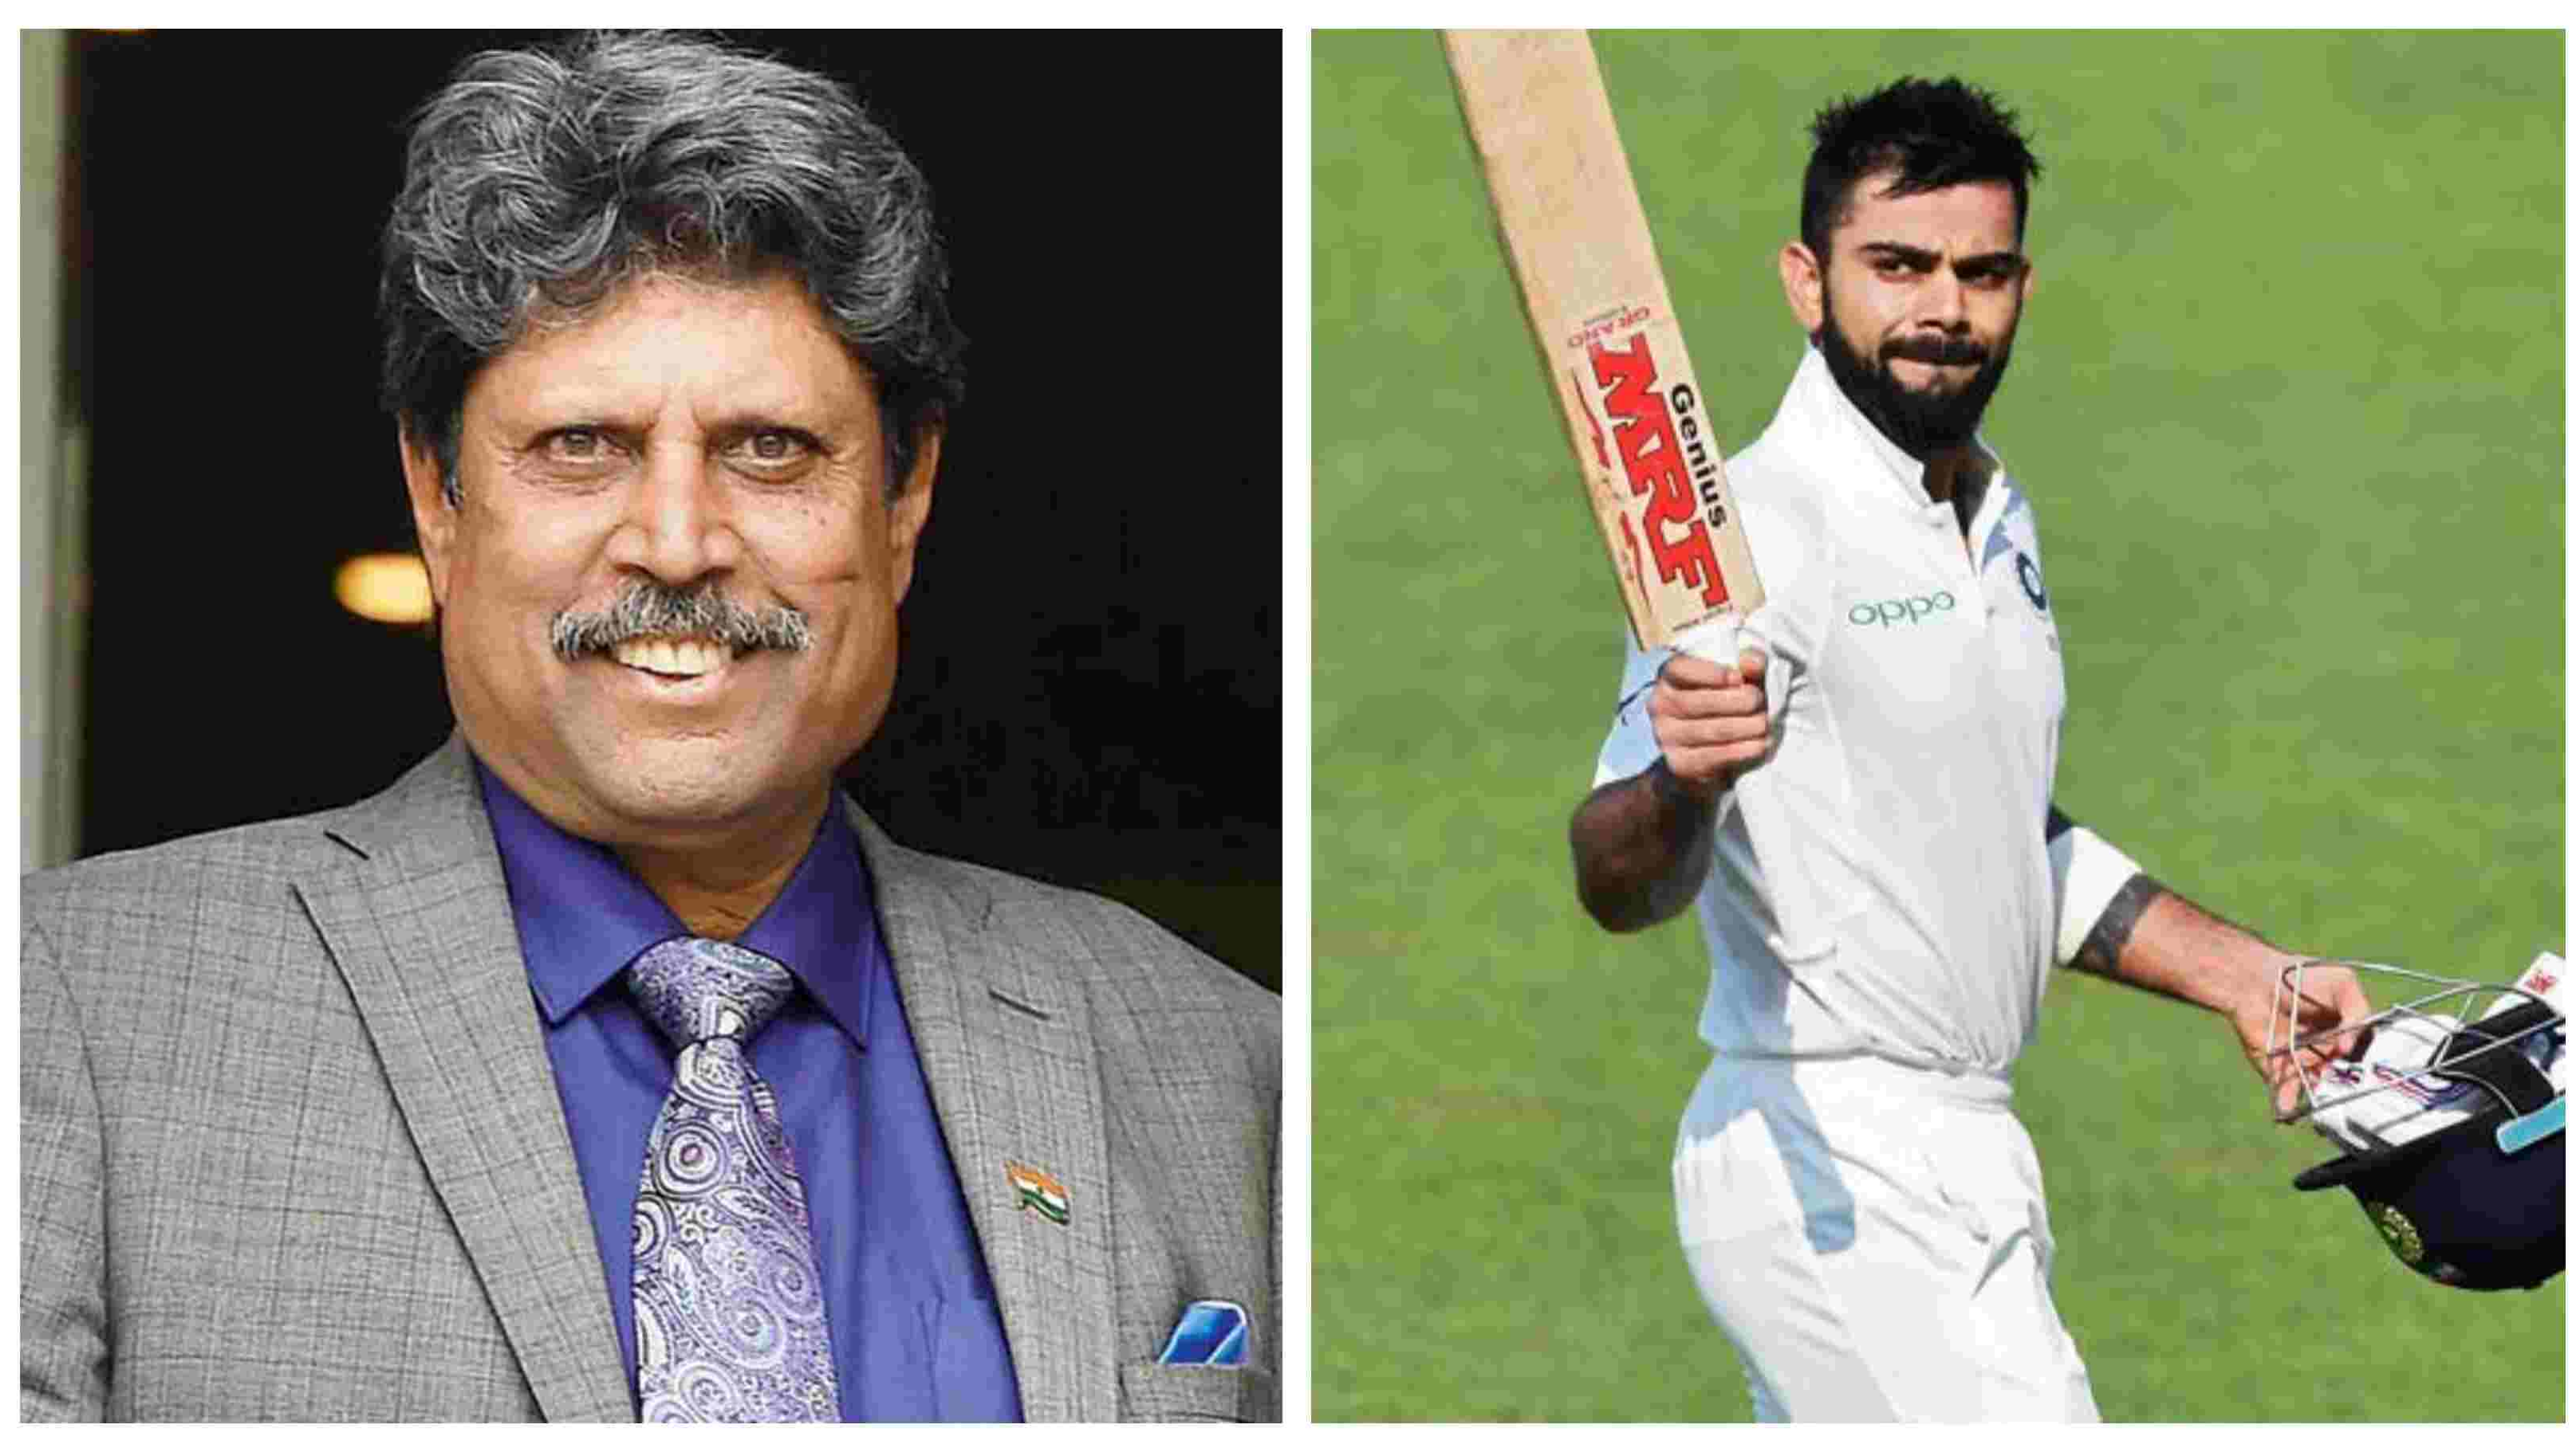 Kapil Dev names Virat Kohli among the top 10 cricketers of all time